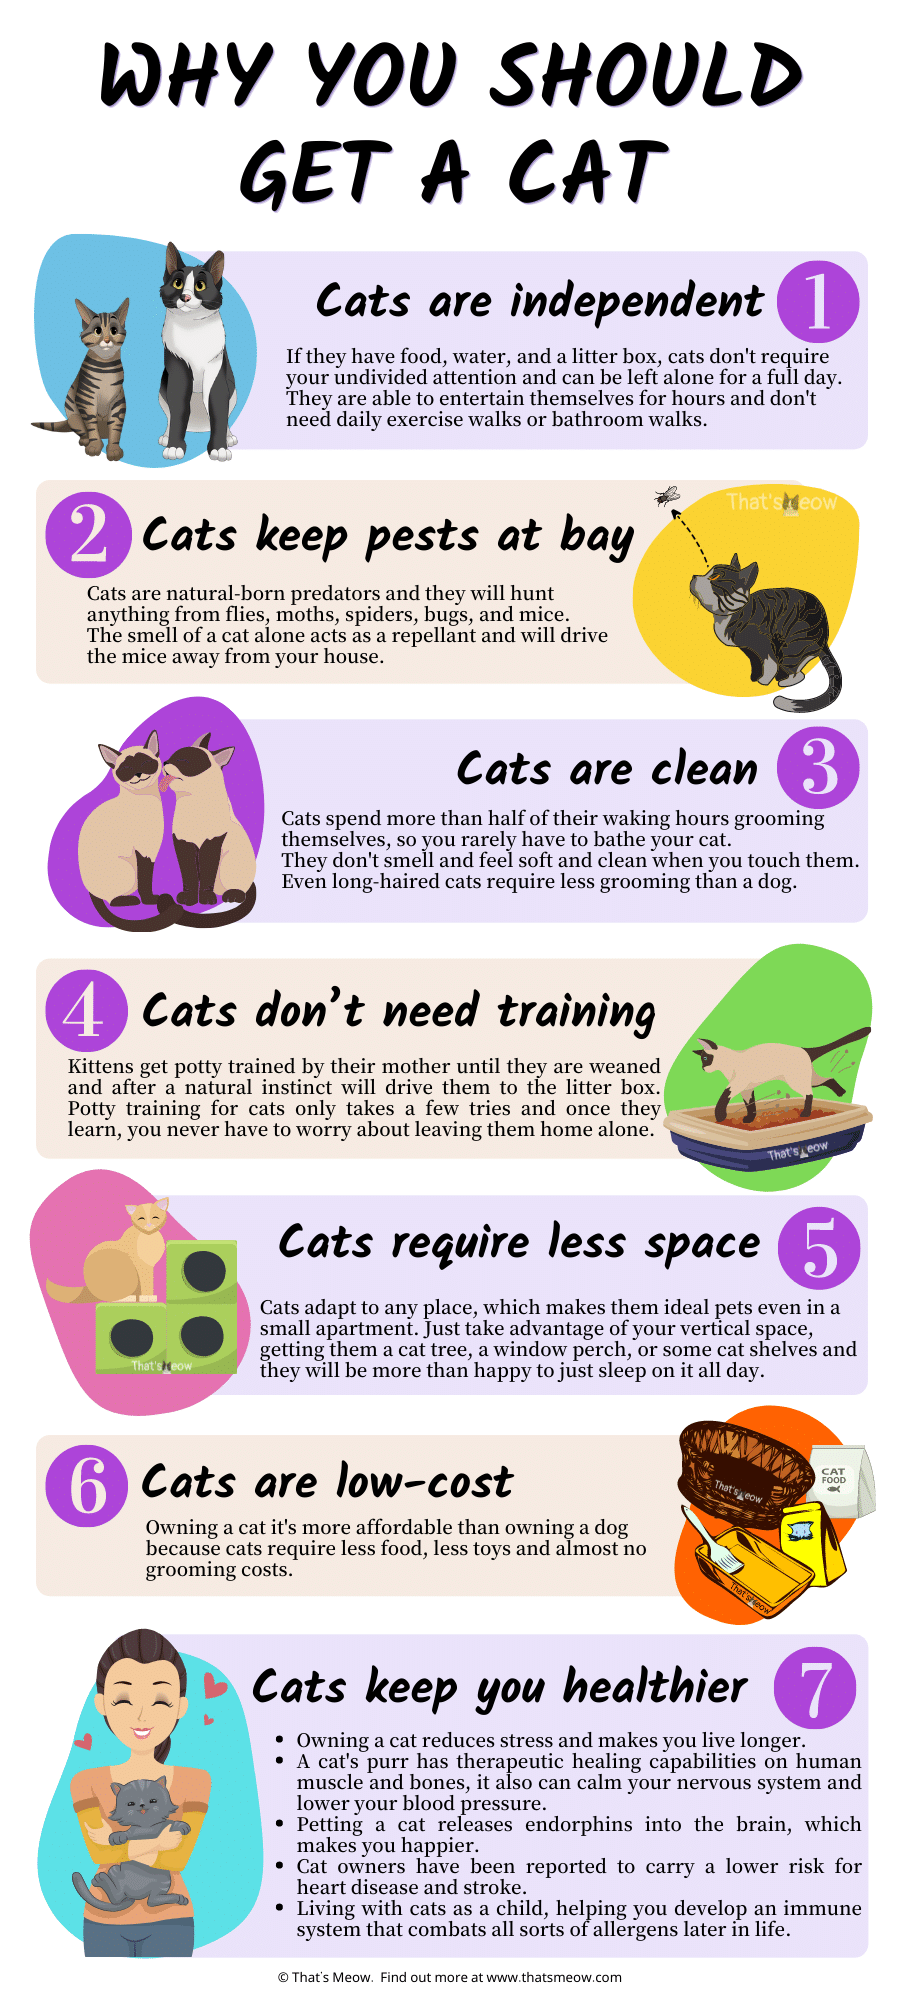 Reasons to get a cat